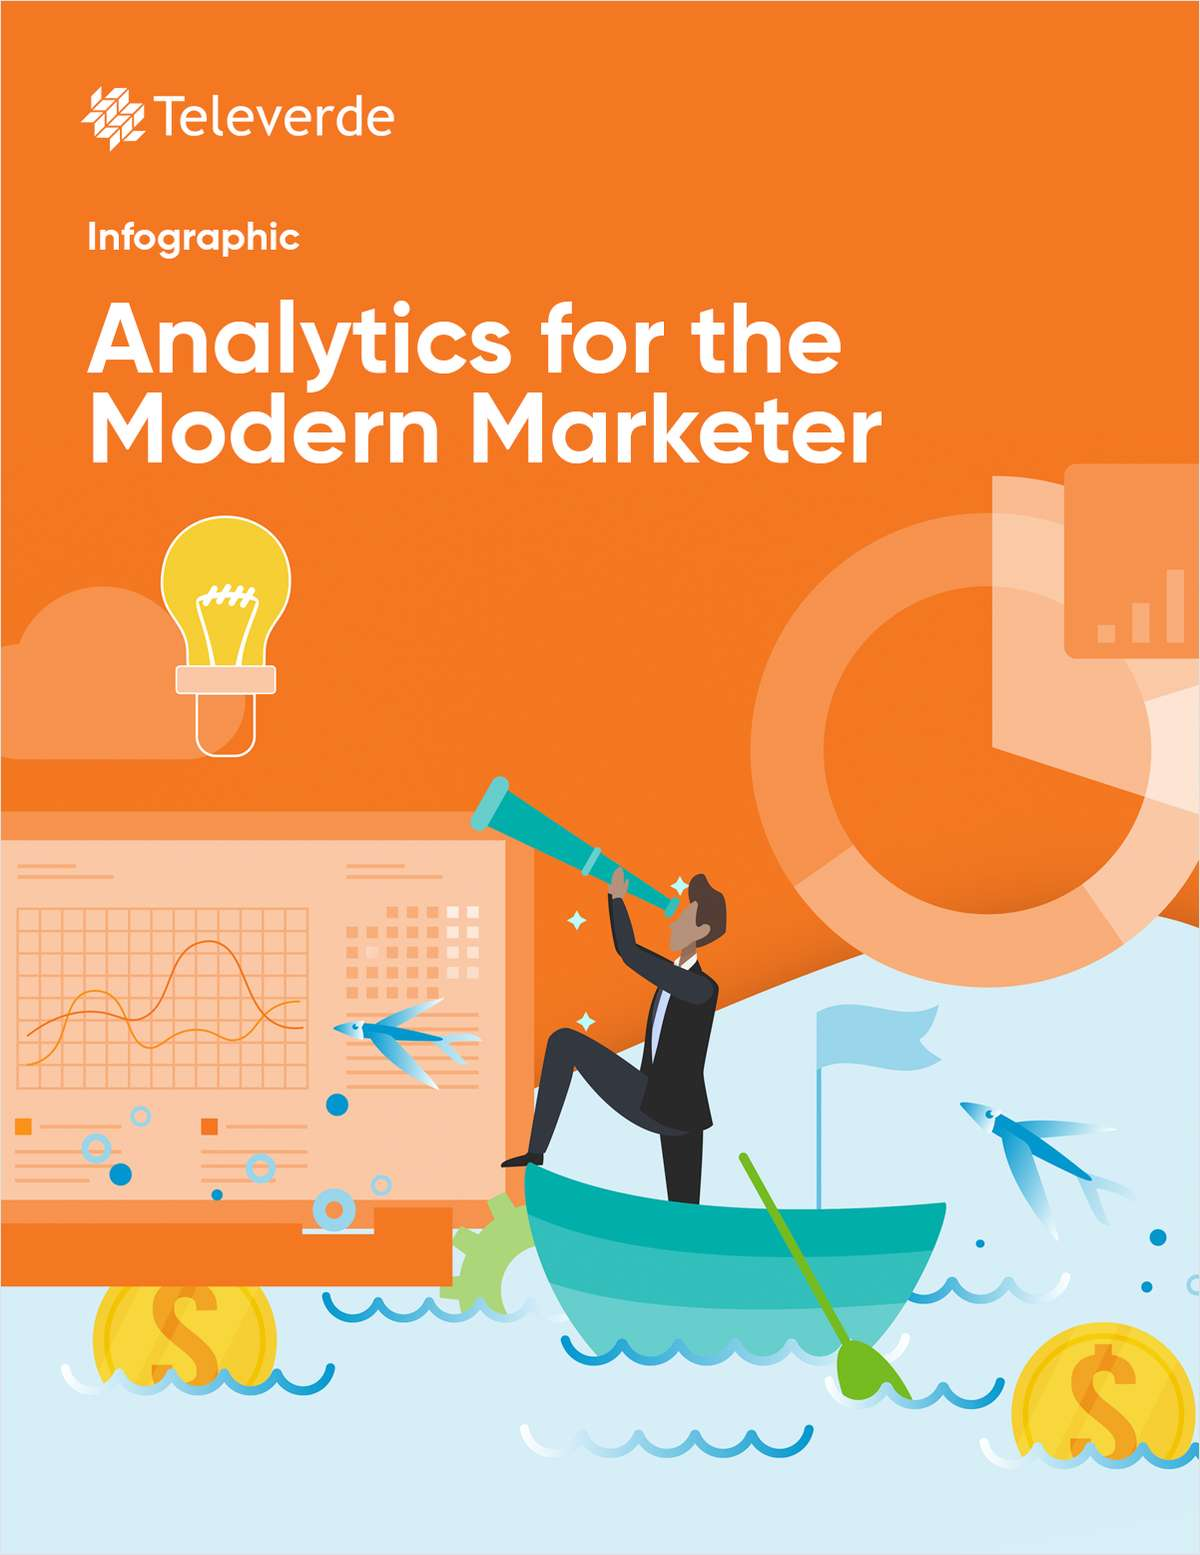 Marketing Analytics for the Modern Marketer